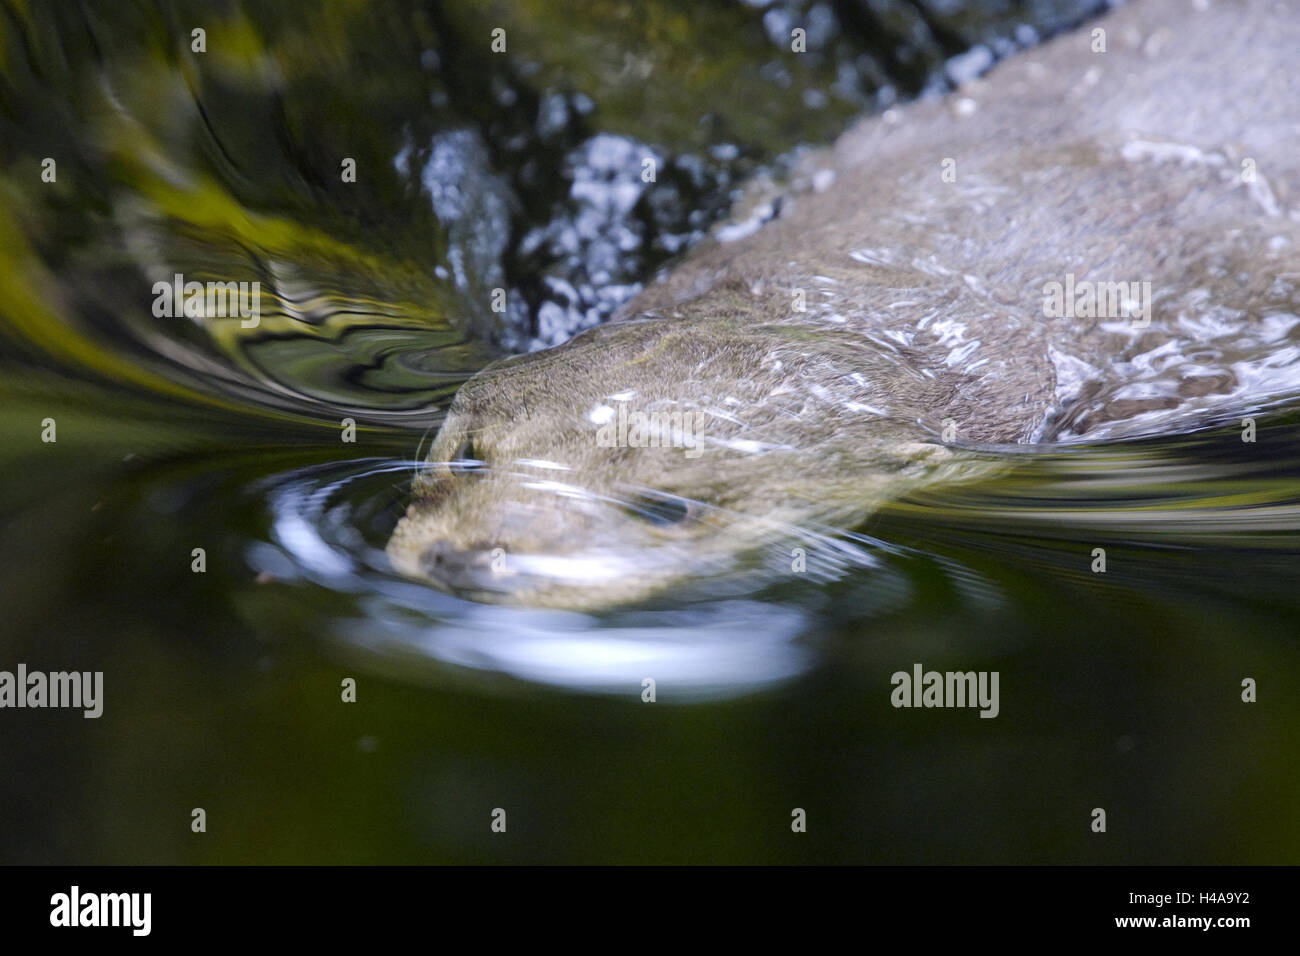 Otters, Lutra lutra, water, swim, disappear, animal world, wilderness, Wildlife, wild animal, animal, mammal, predator, - Stock Image